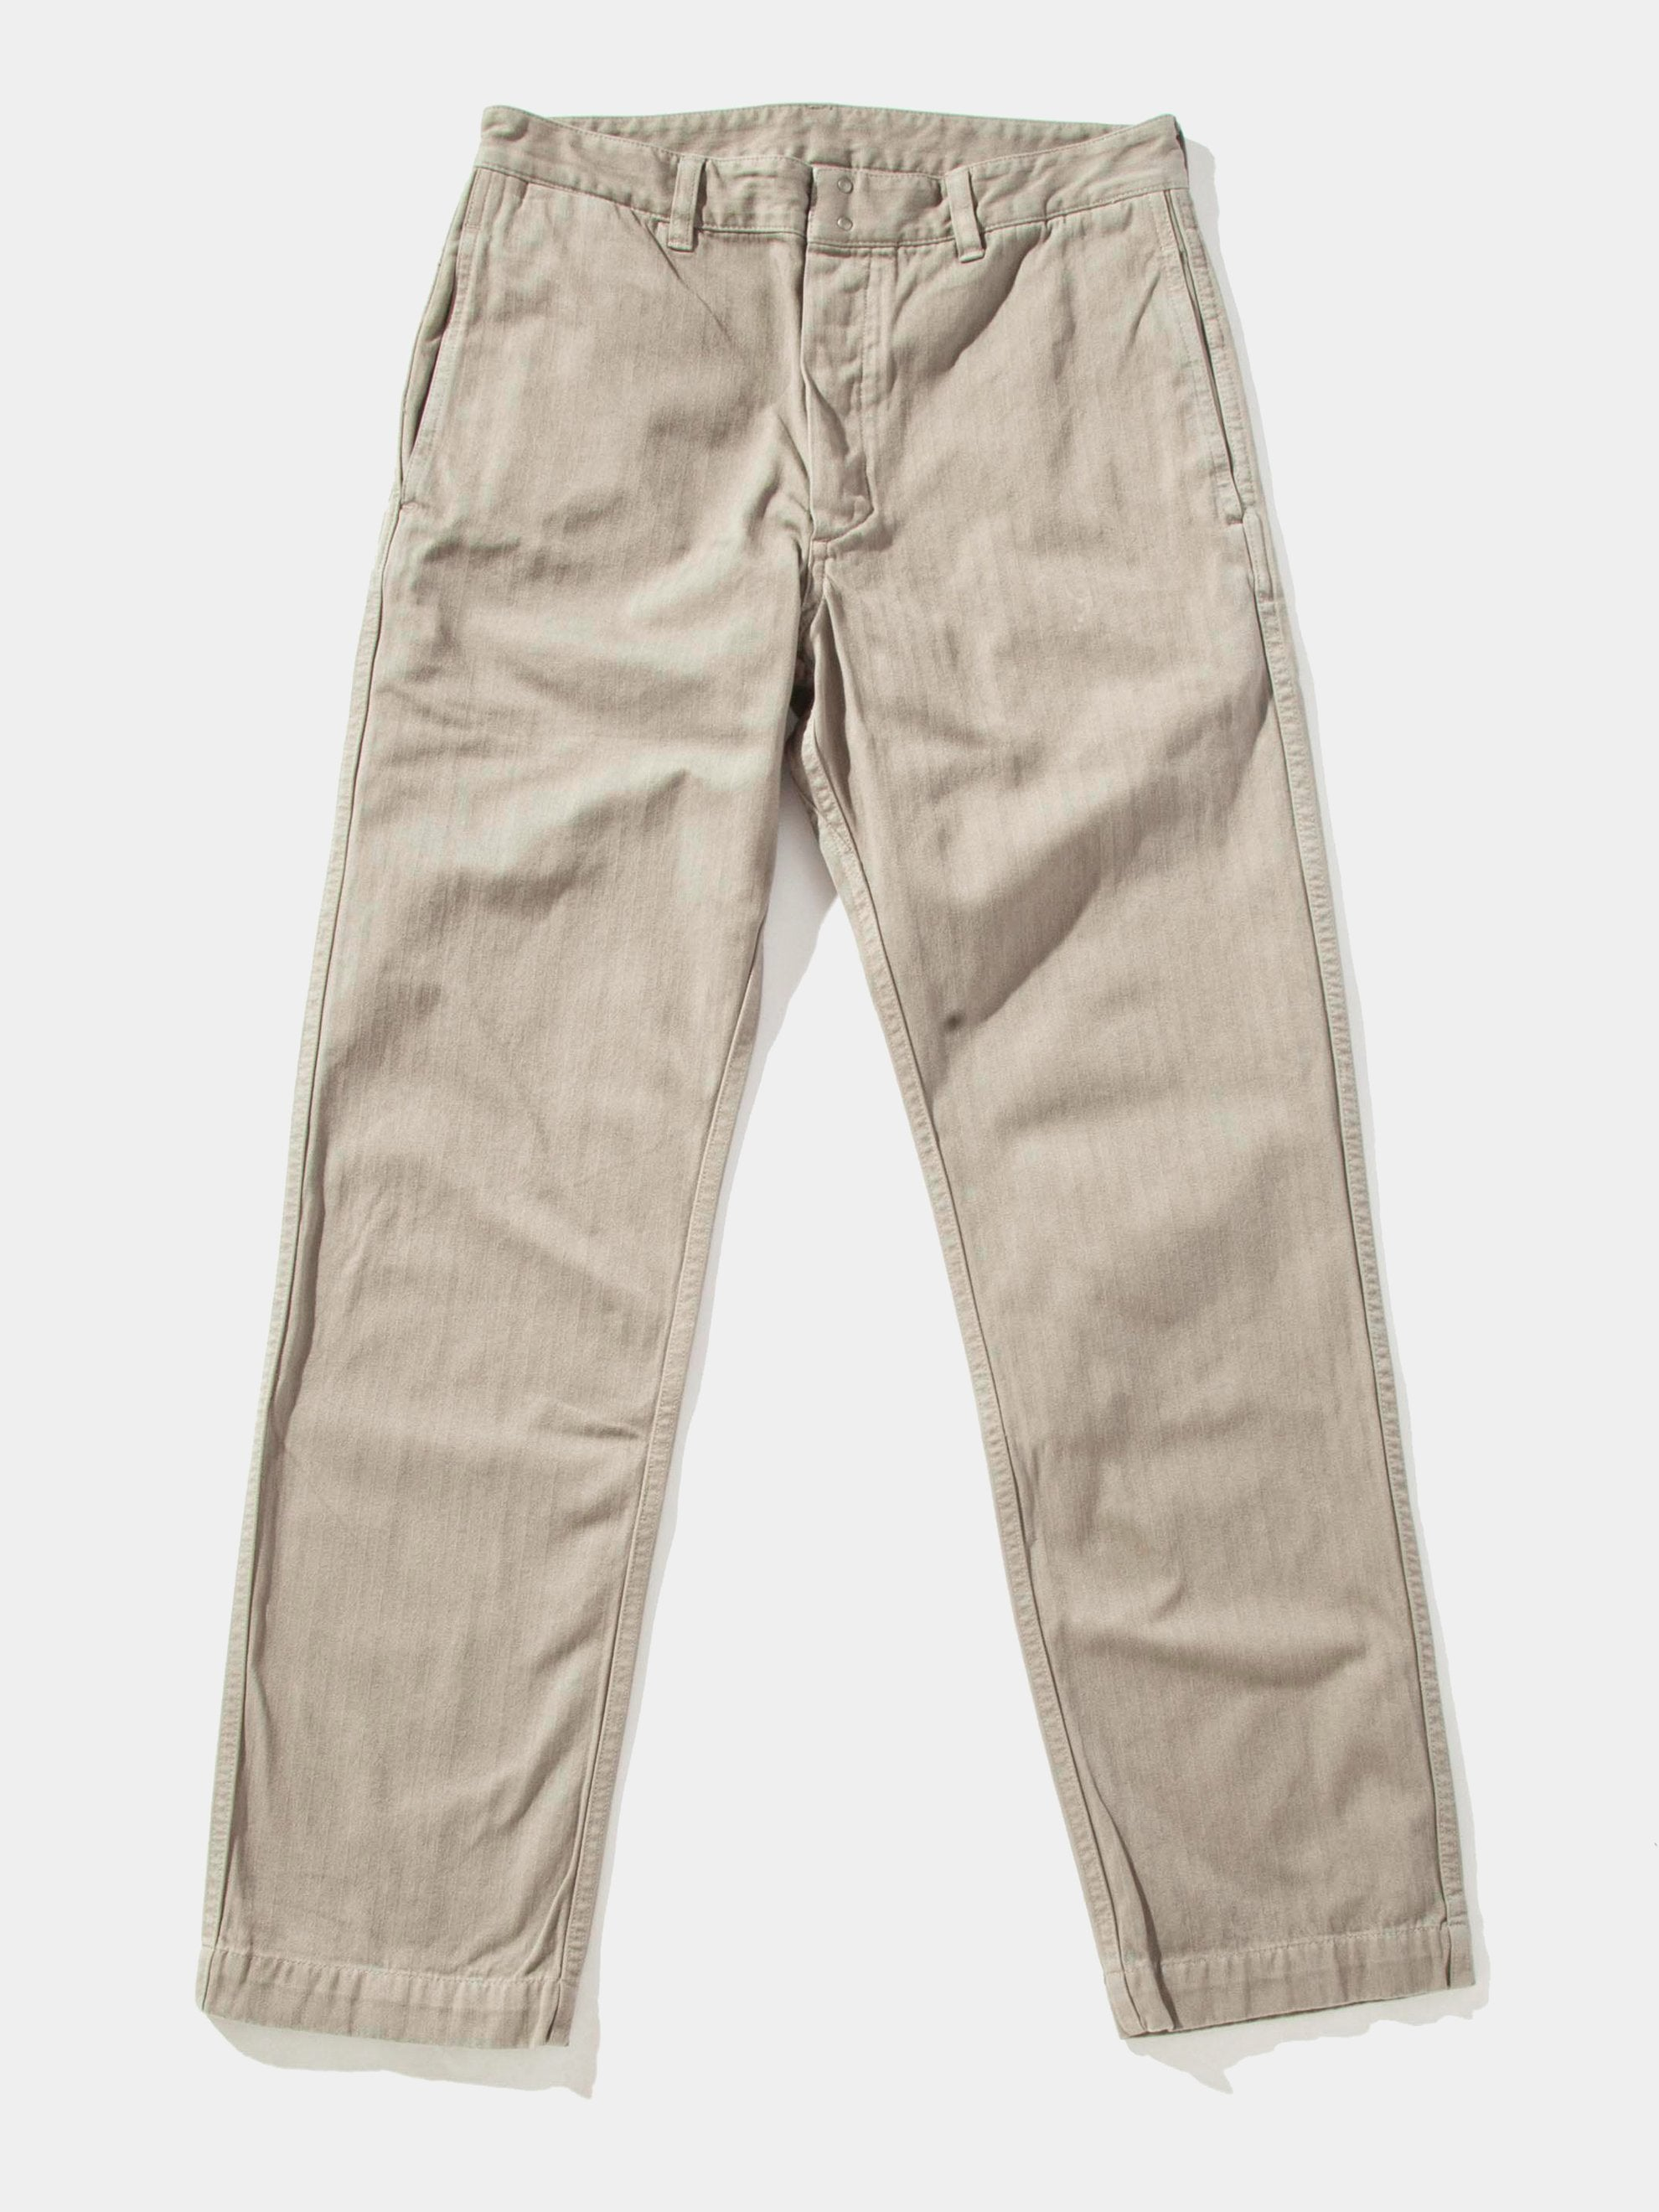 Blue Pastoral Pants Herringbone 14